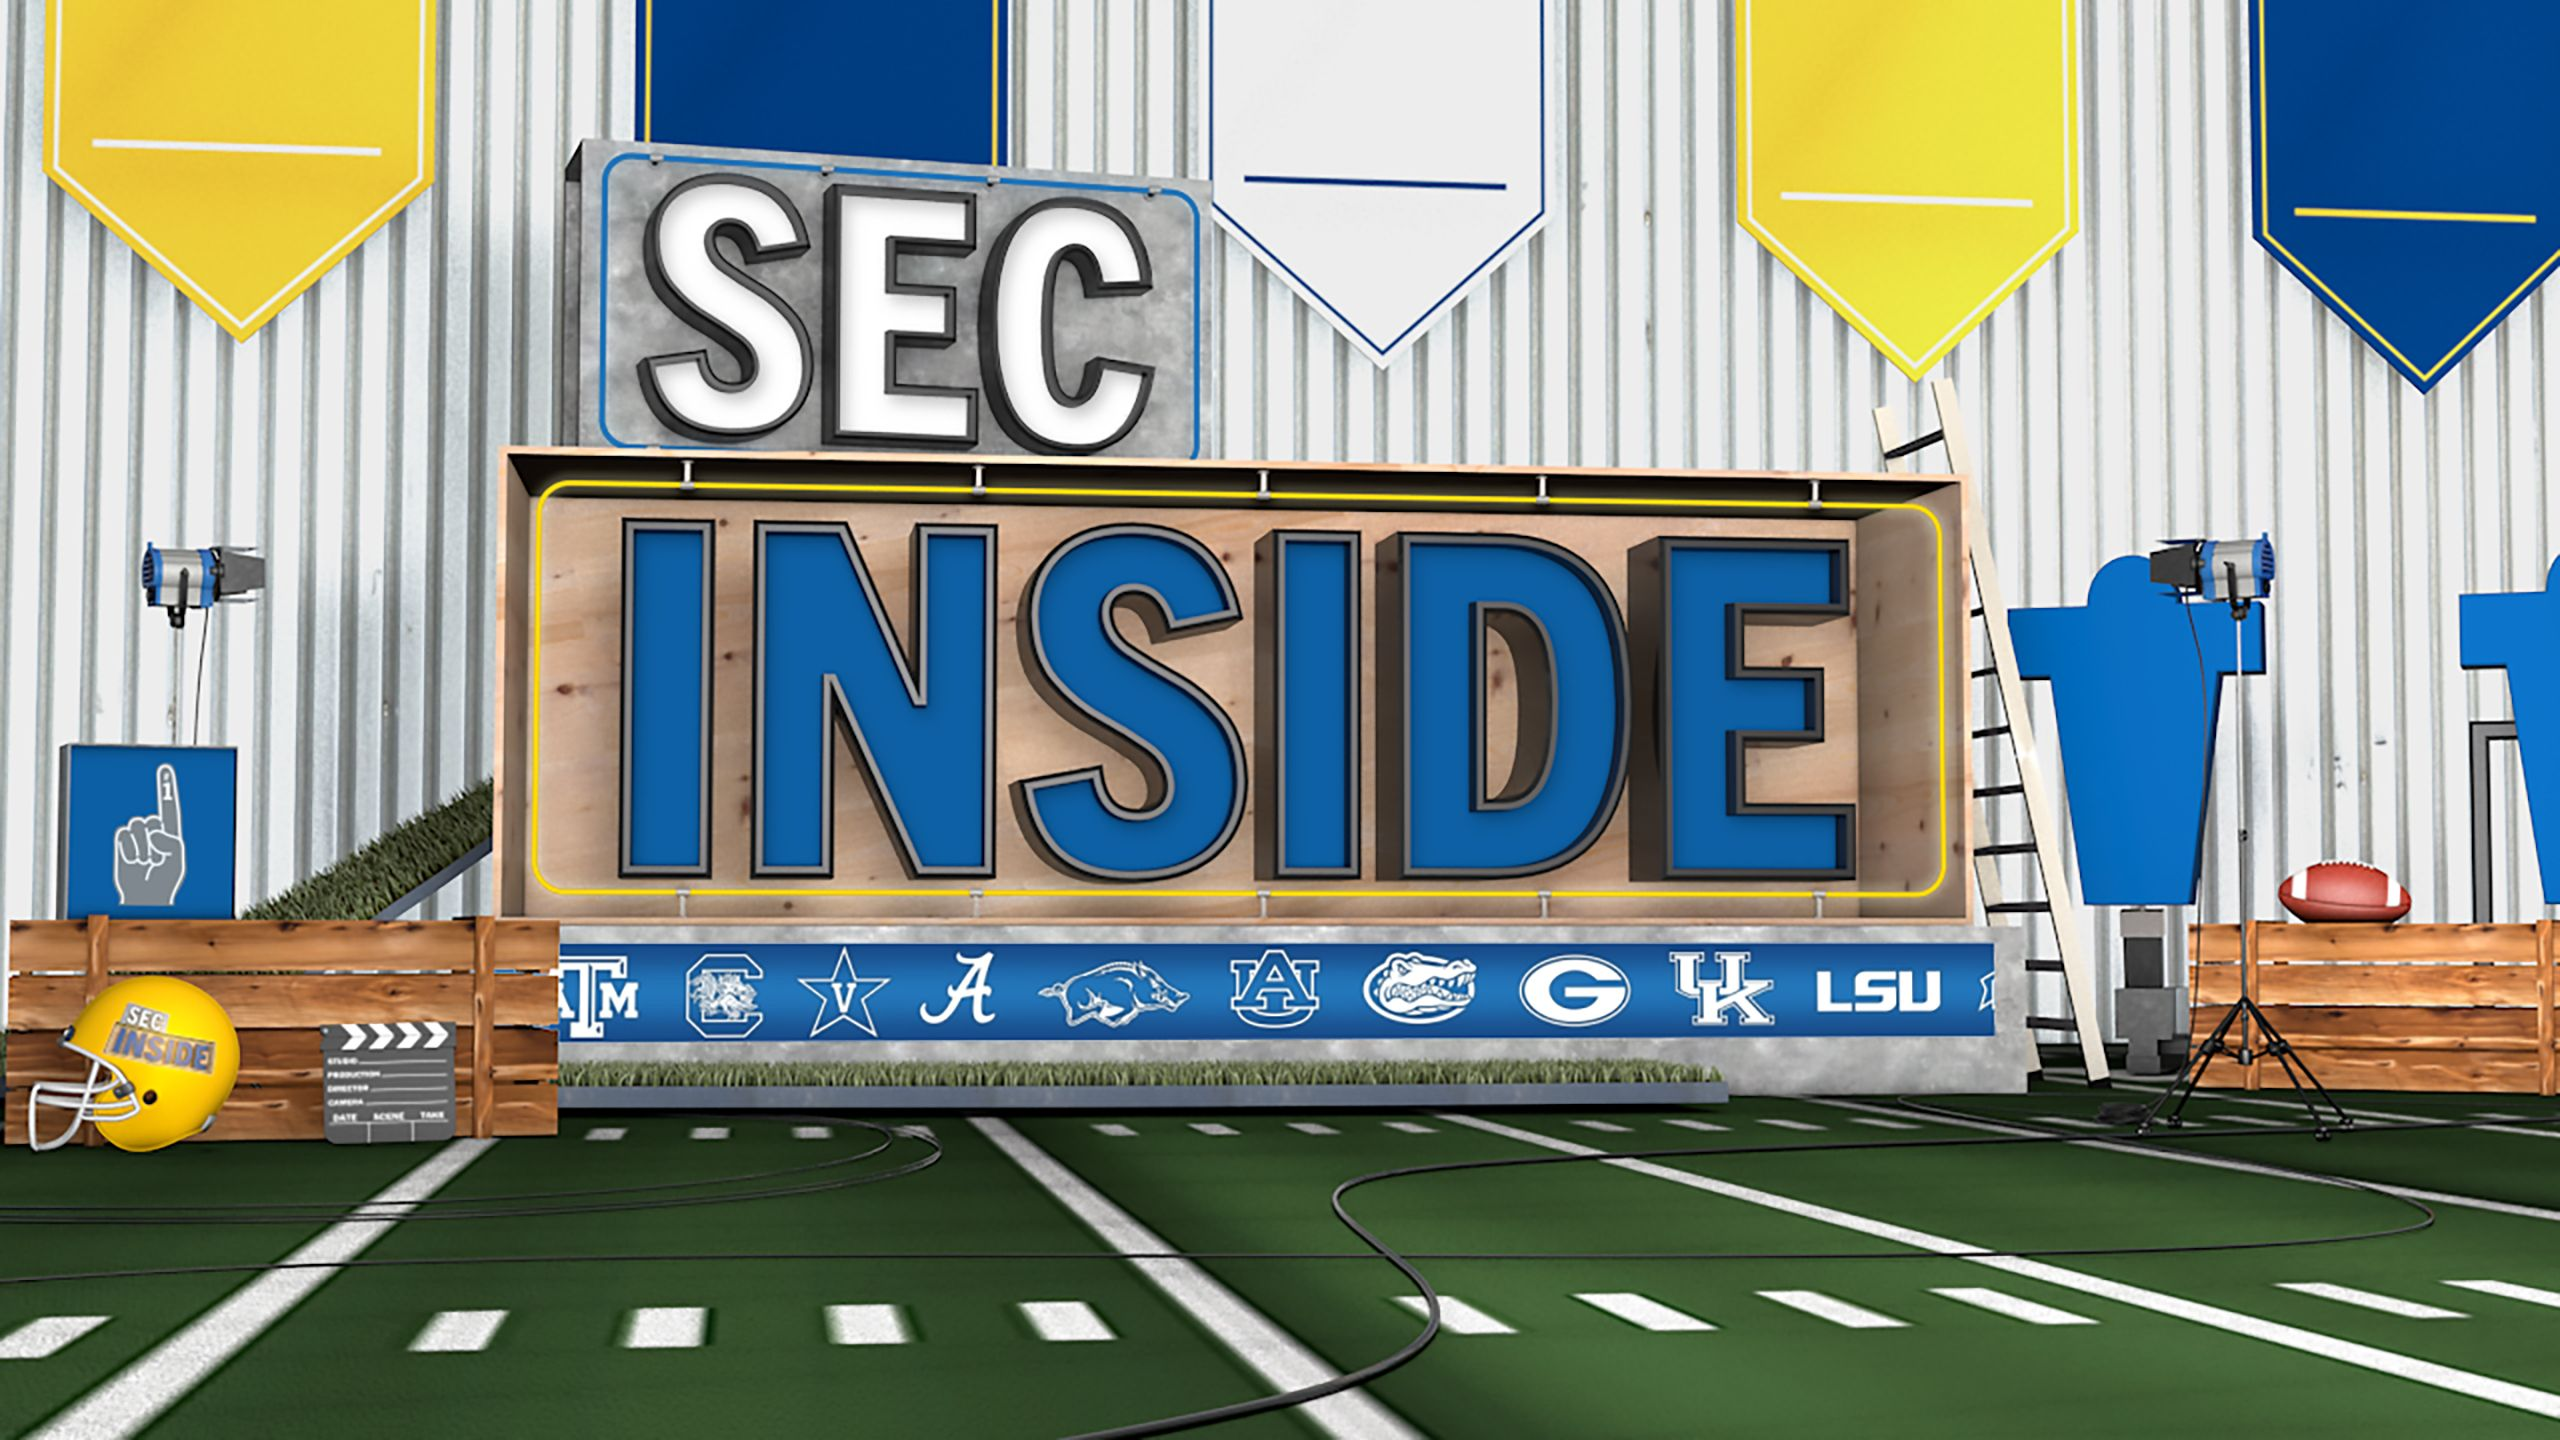 SEC Inside: SEC Baseball Tournament